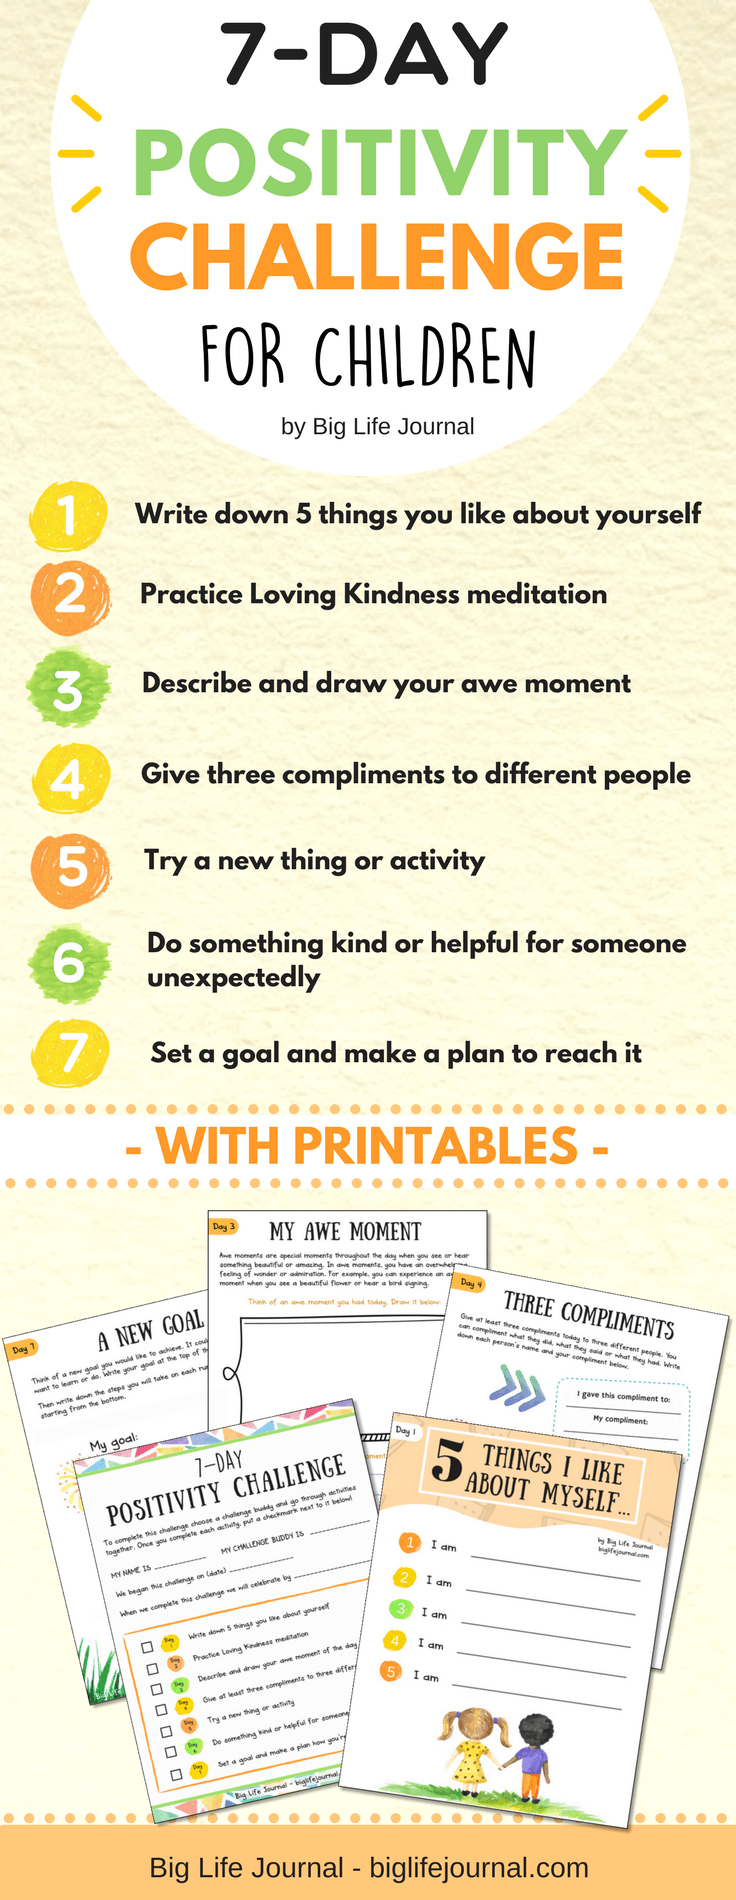 7-day positivity challenge for children which includes a printable worksheet for each day.